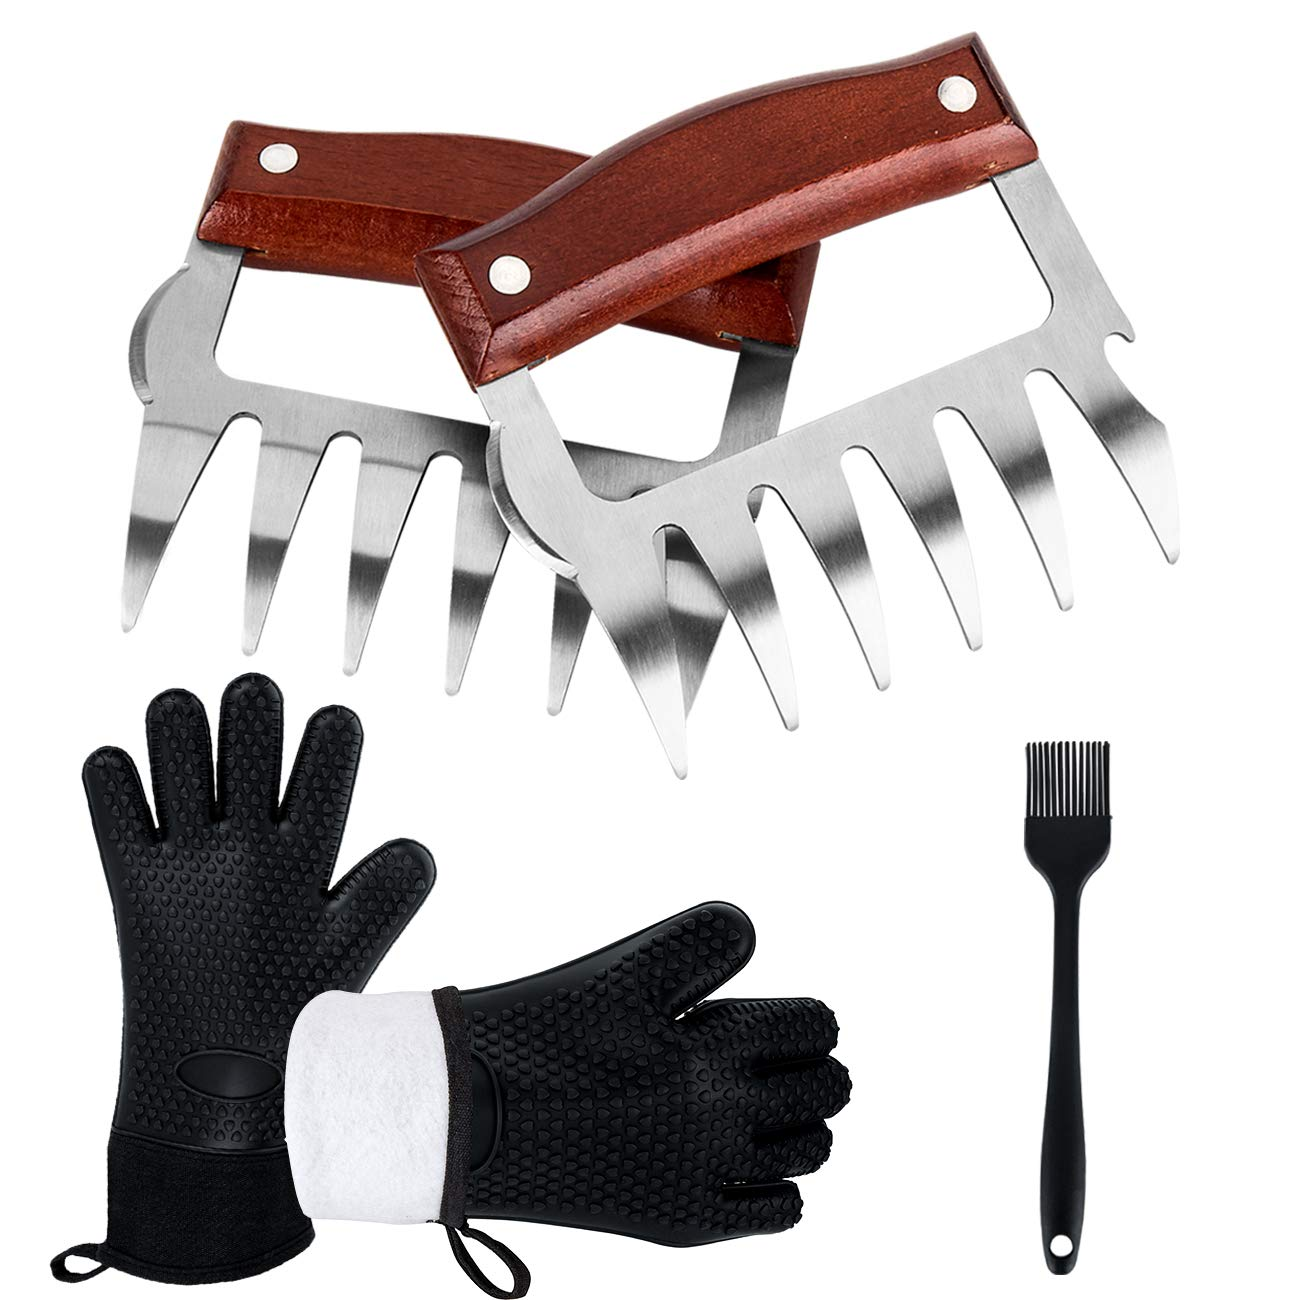 BBQ Gloves, Meat Claws, Silicone Brush, 5Parts BBQ Grill Tools Accessories Kit